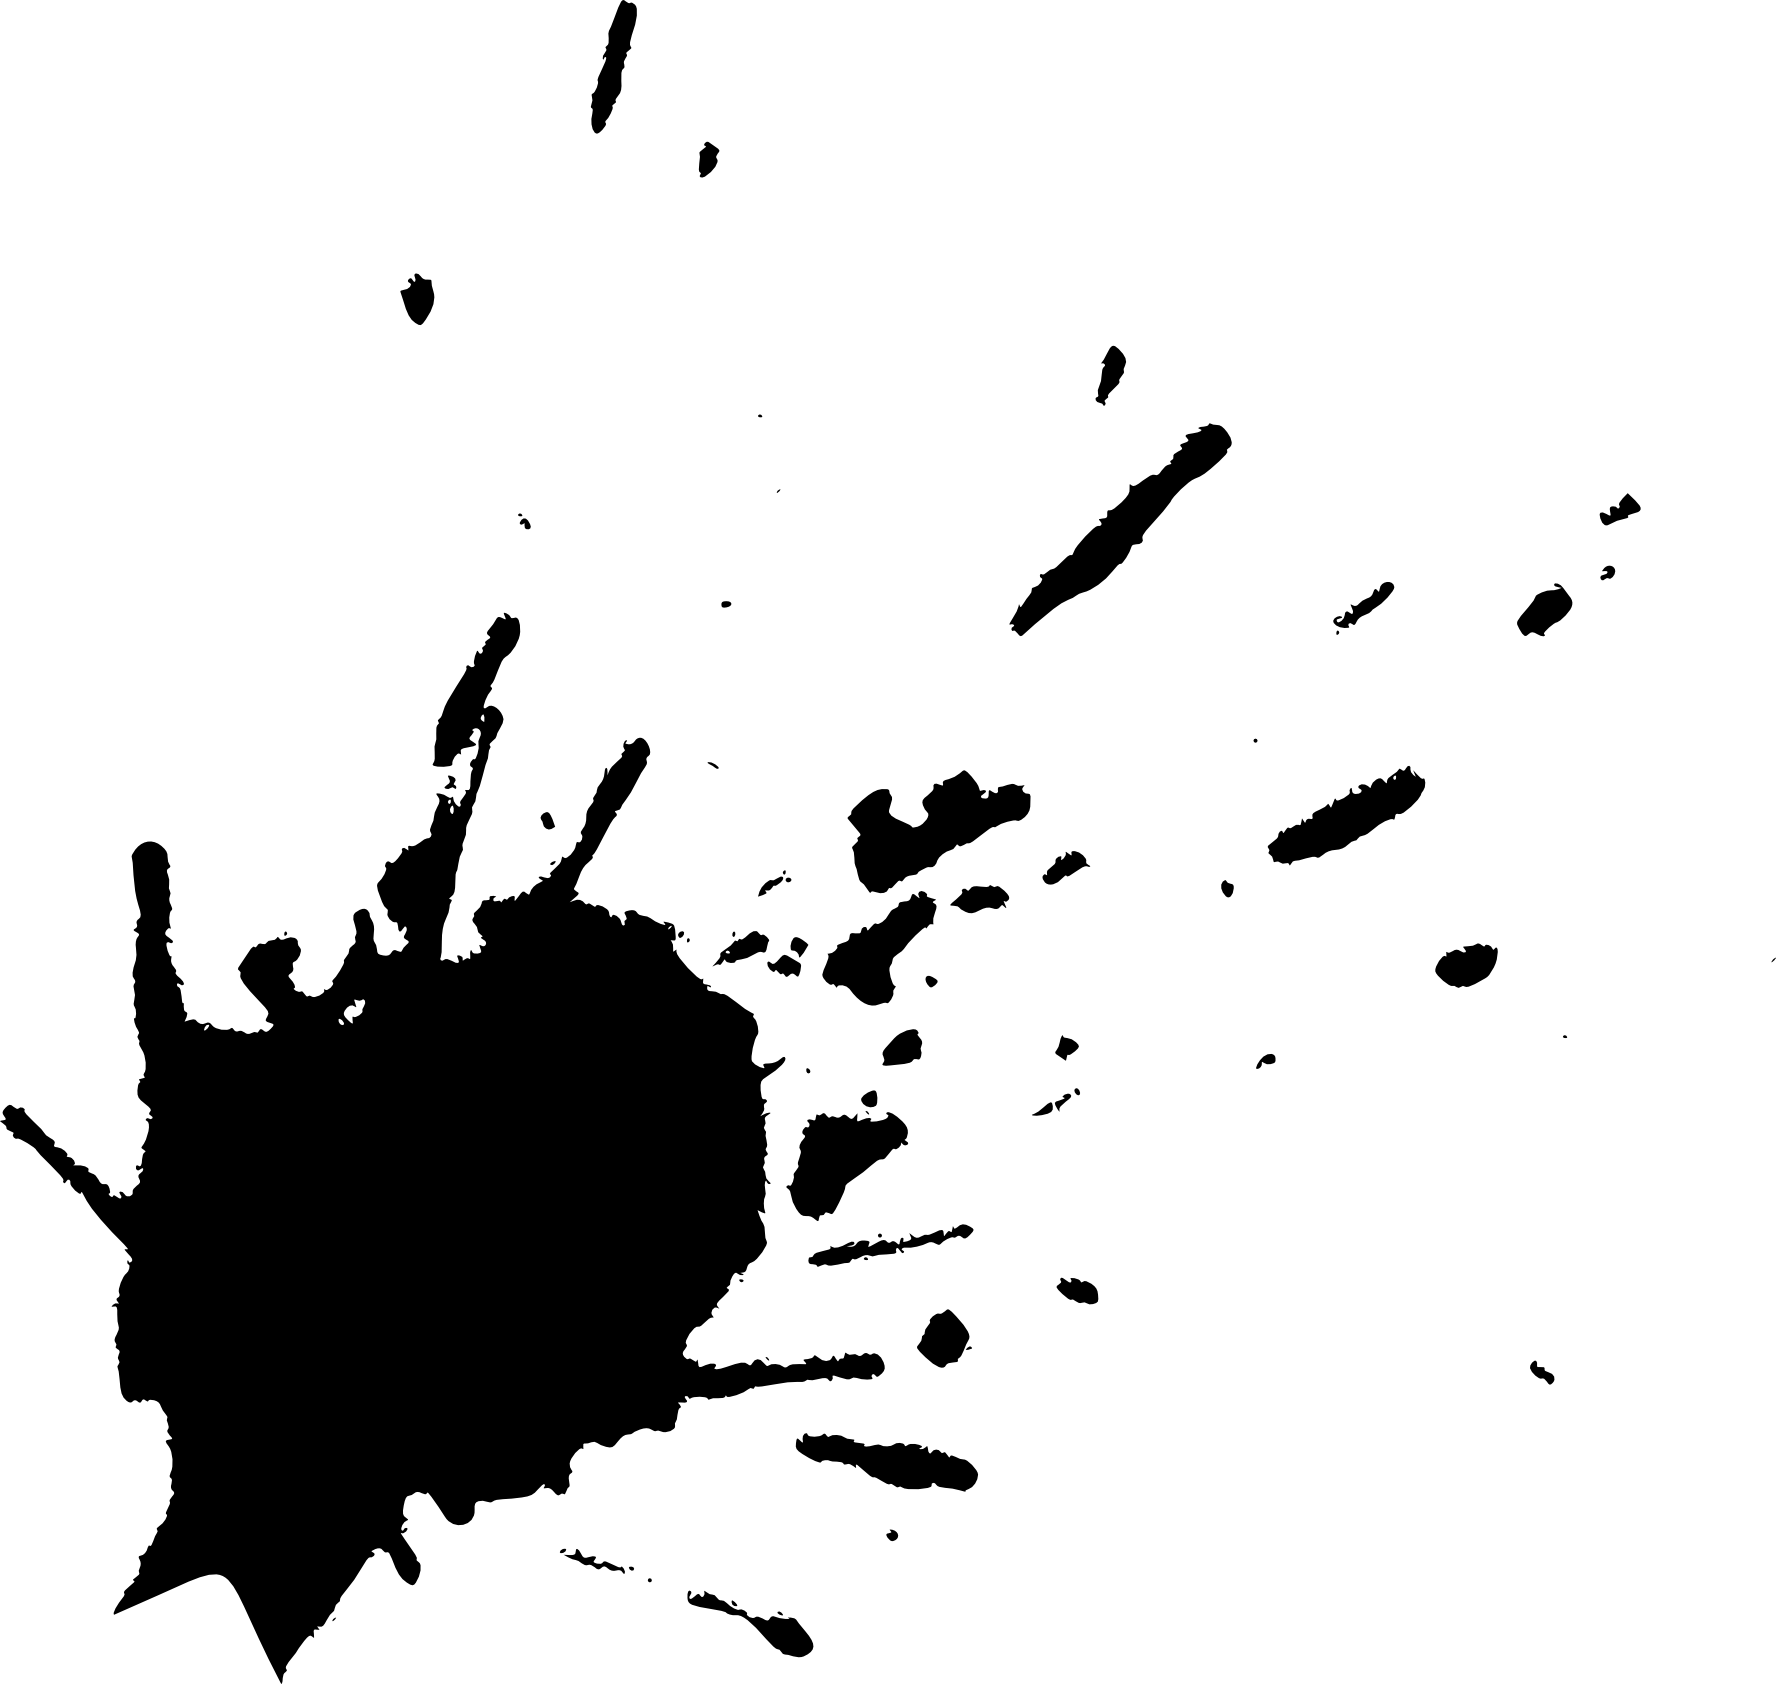 Black Paint Splatter Transparent | www.pixshark.com ...